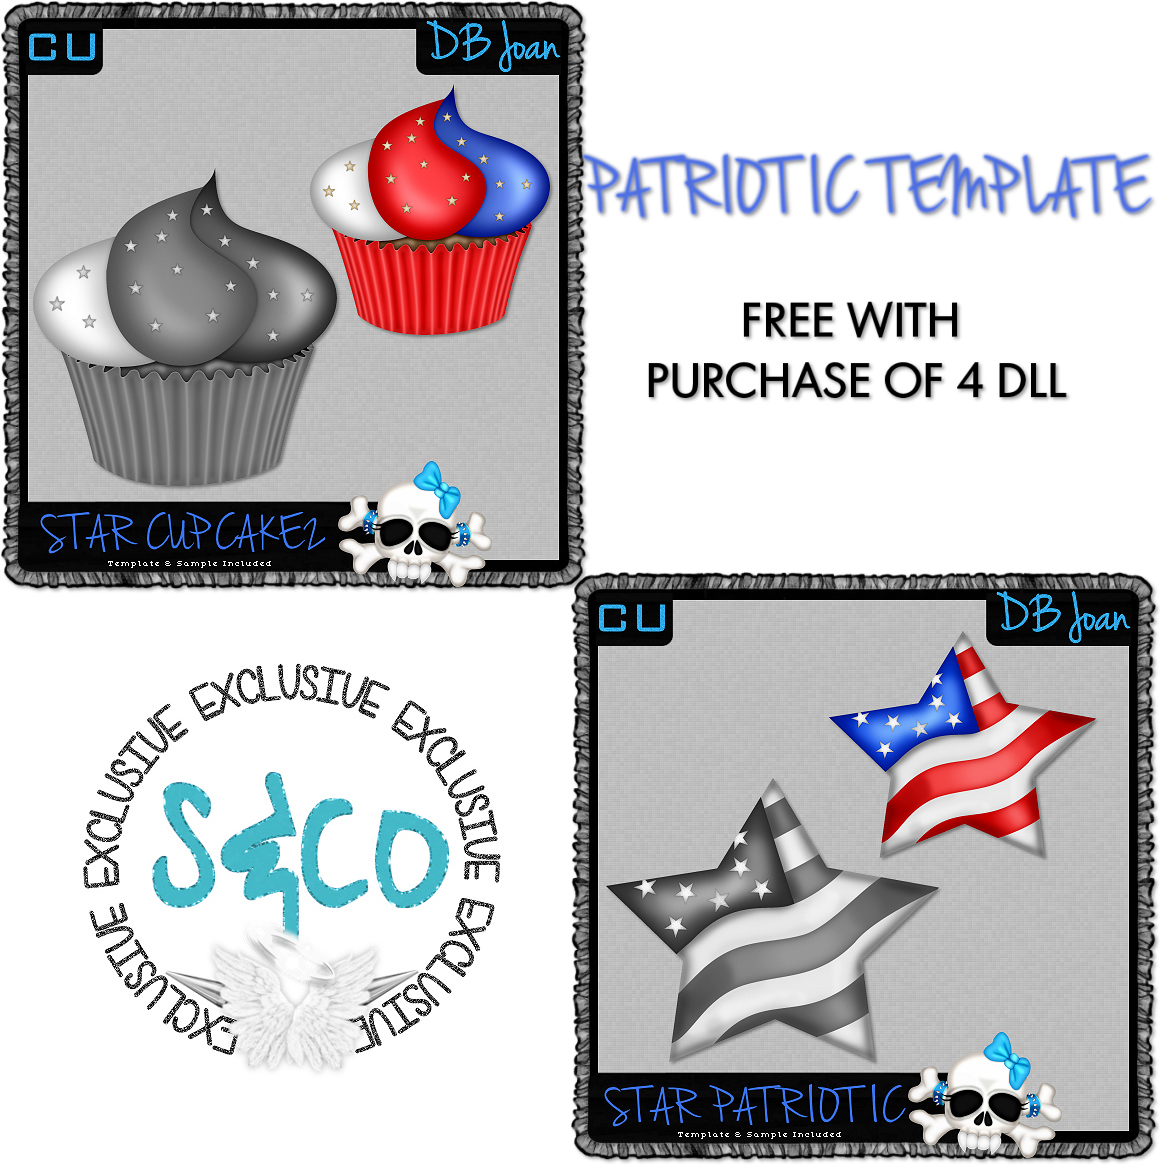 PATRIOTIC TEMPLATES DBJ